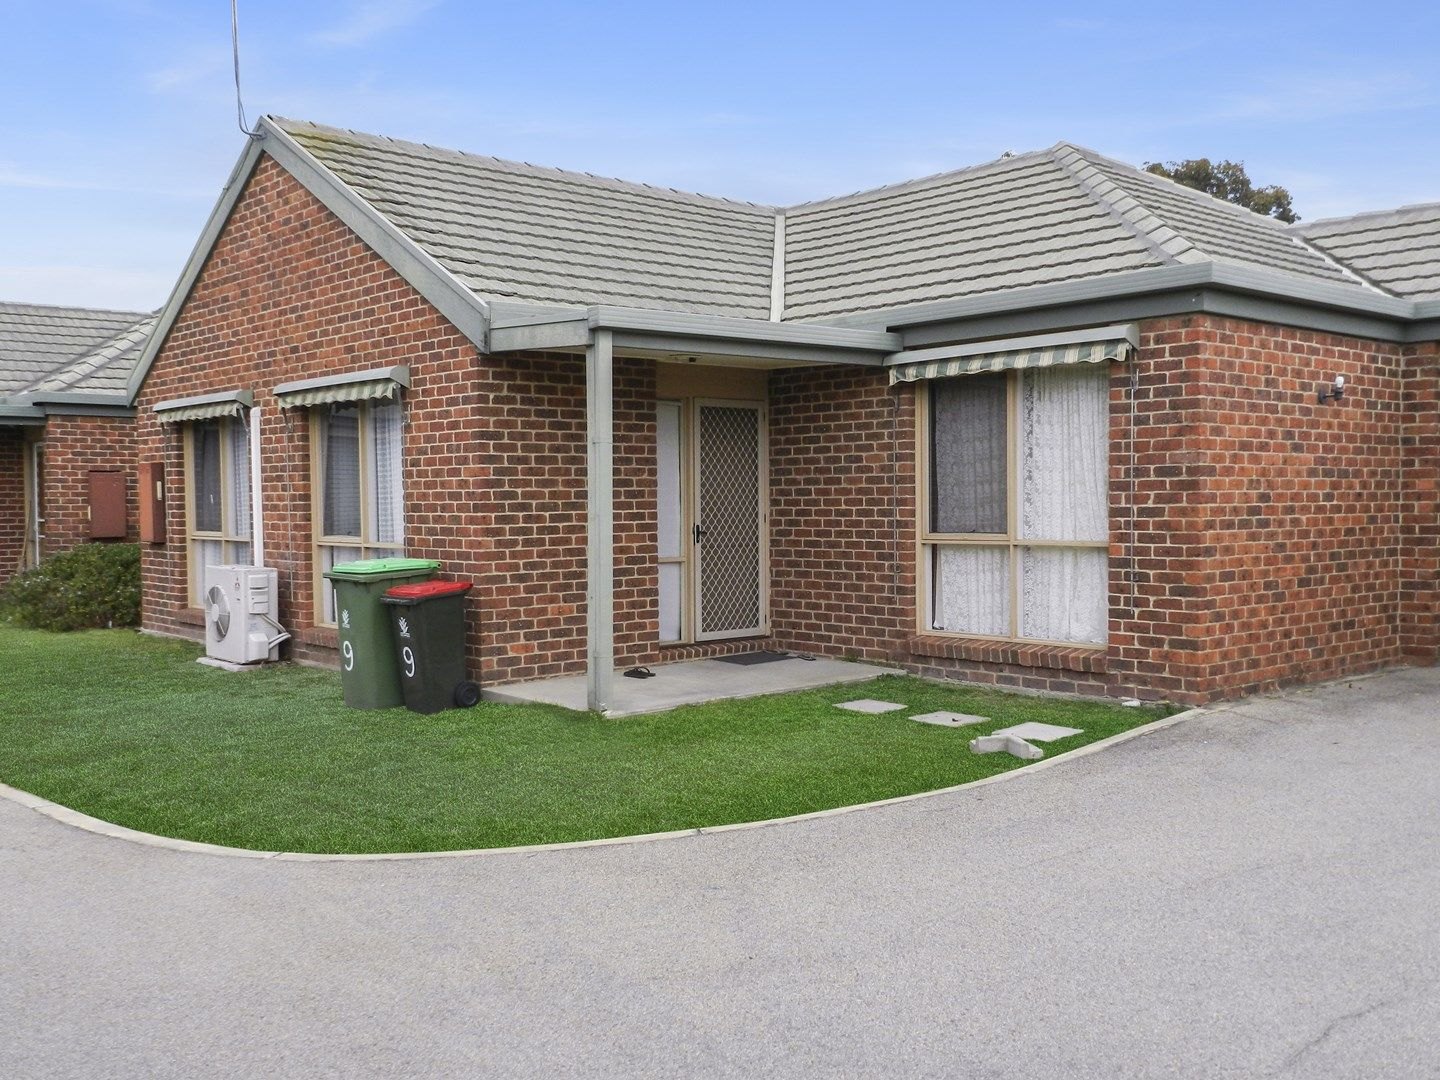 9/93-99 Moroney Street, Bairnsdale VIC 3875, Image 0